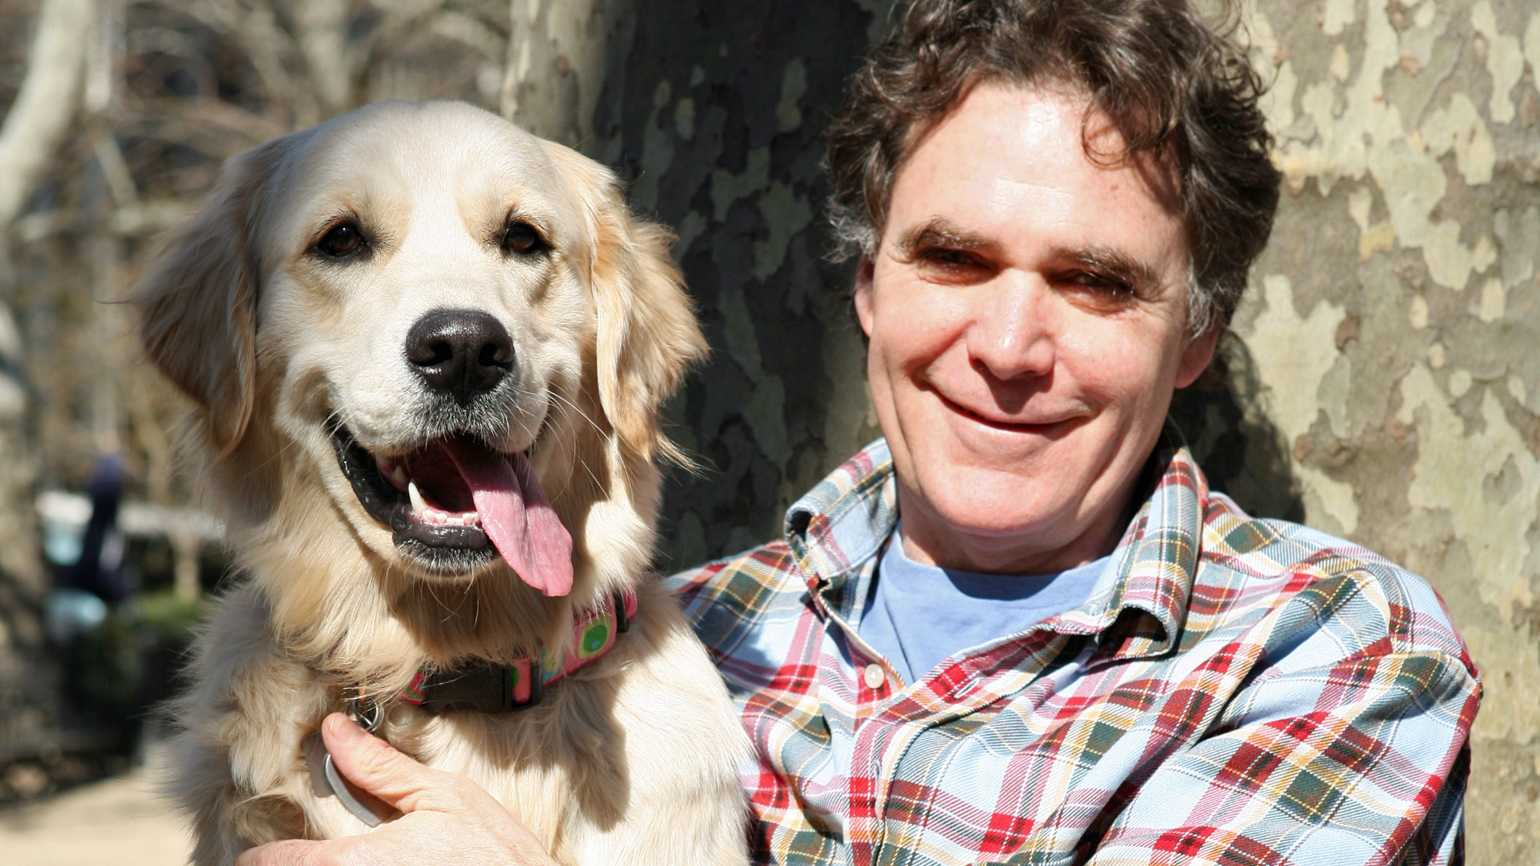 Edward Grinnan with his beloved canine companion, Millie